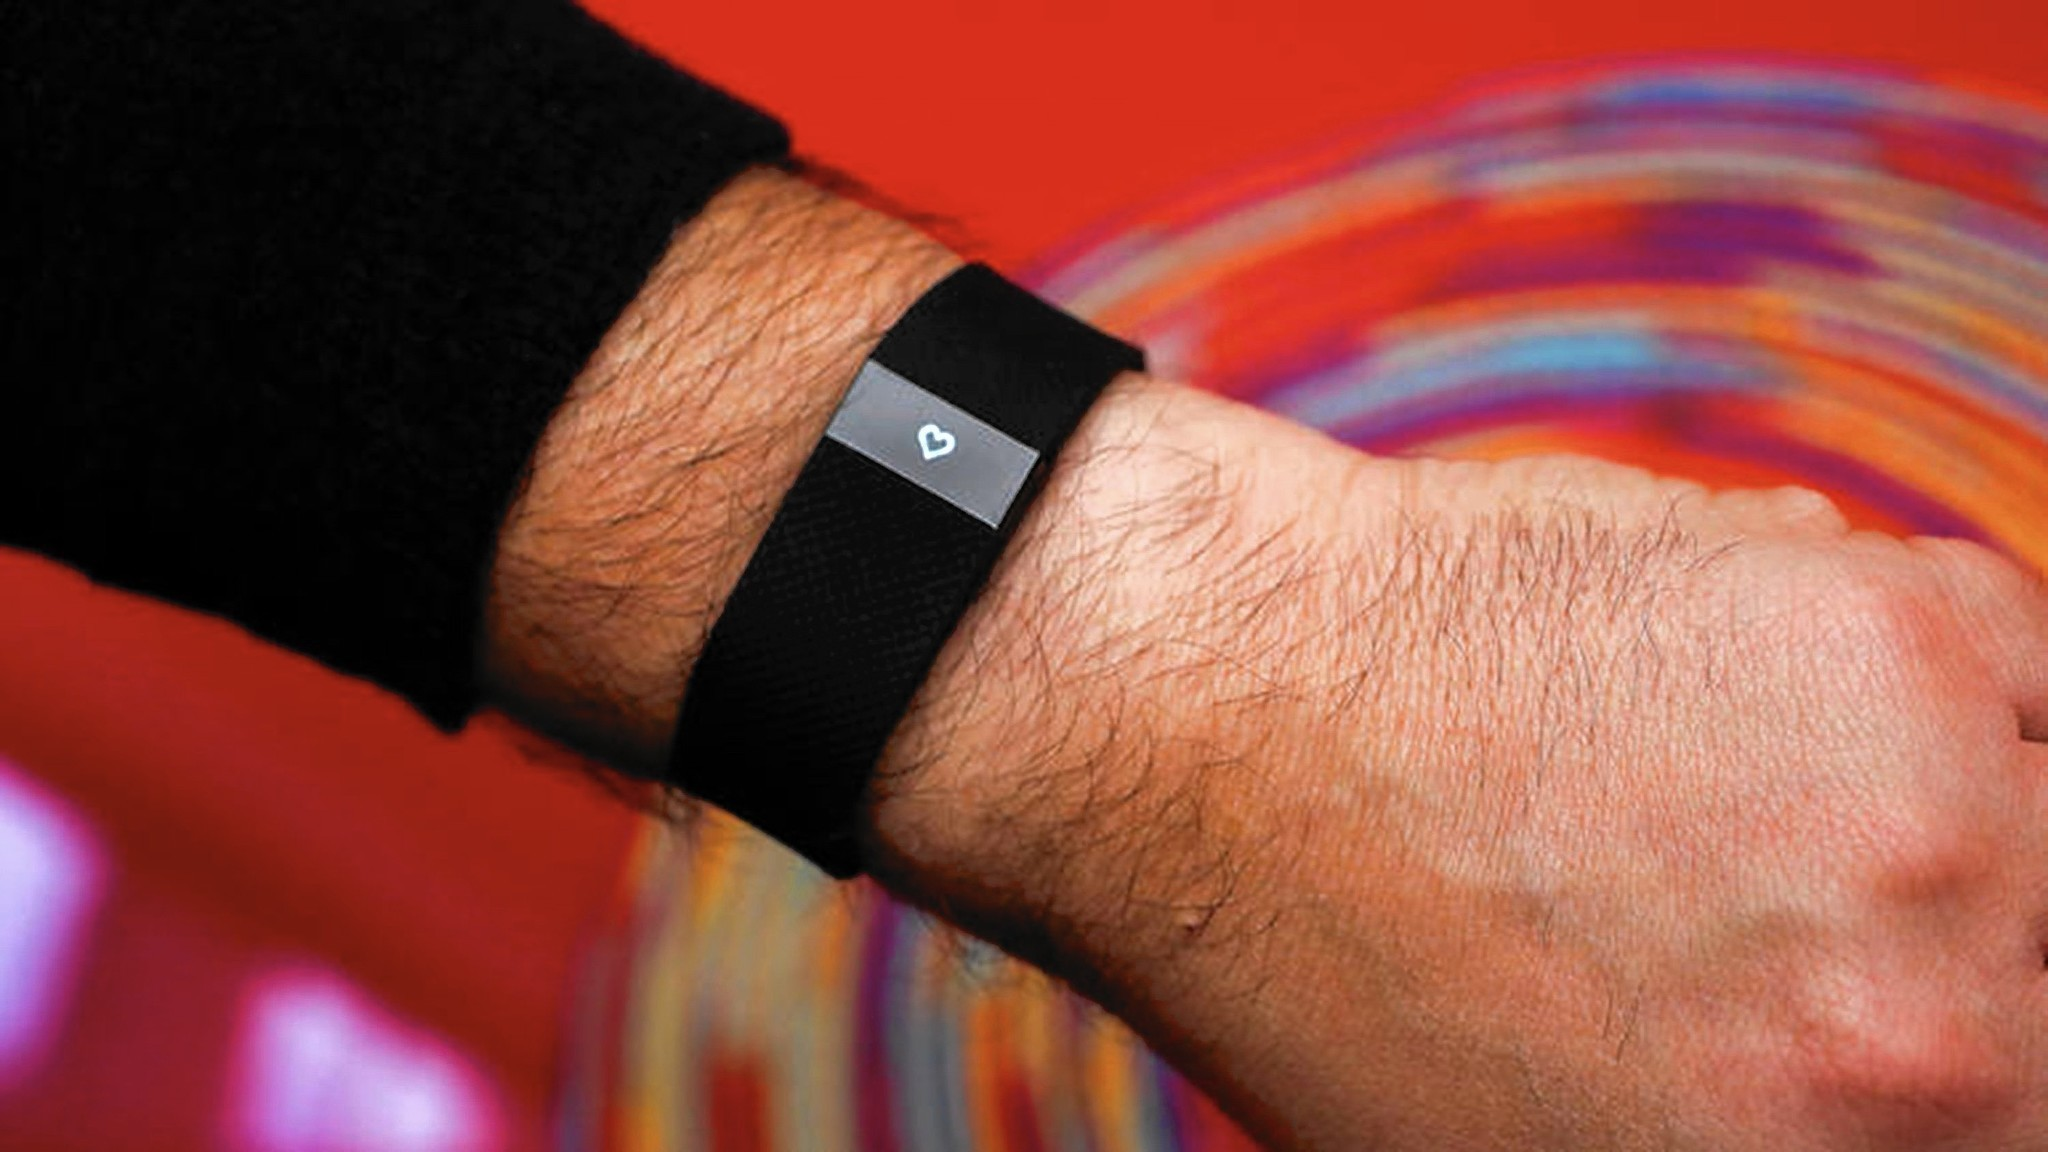 Fitbit other heart rate wristbands often inaccurate study finds fitbit other heart rate wristbands often inaccurate study finds chicago tribune nvjuhfo Image collections